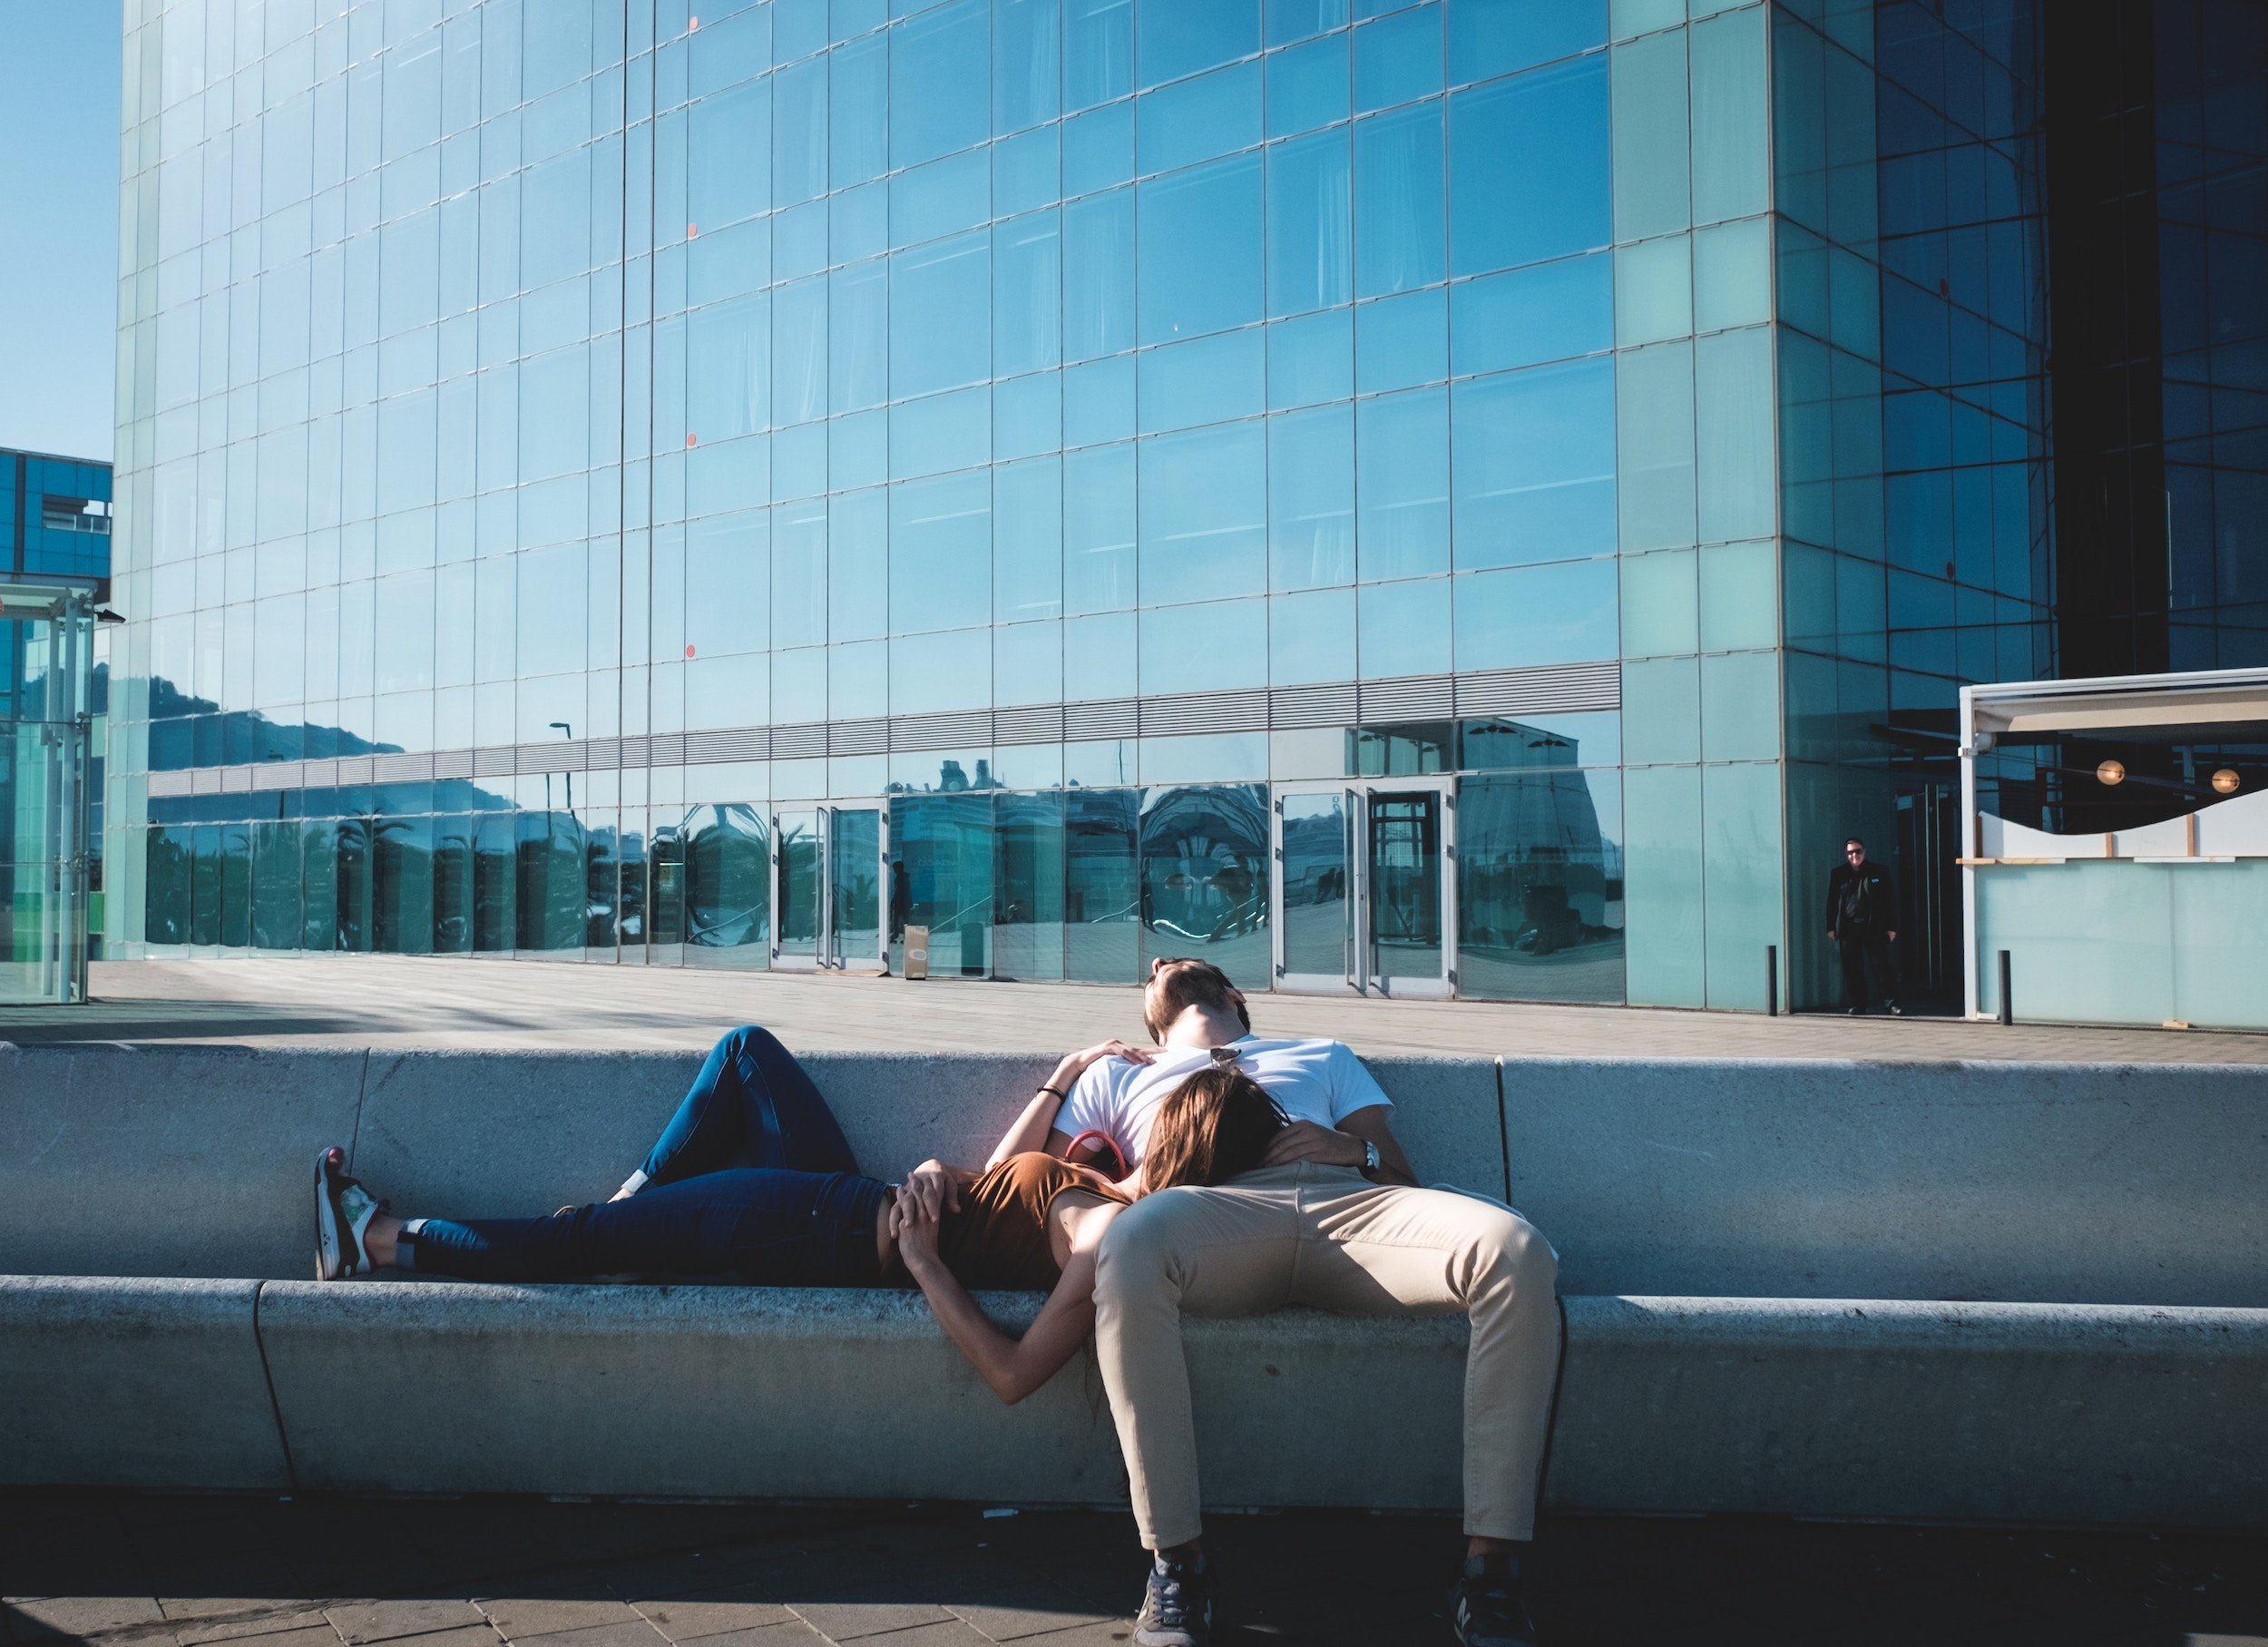 Man lying back on a concrete bench, his spouse laying horizontally with her head on his leg.